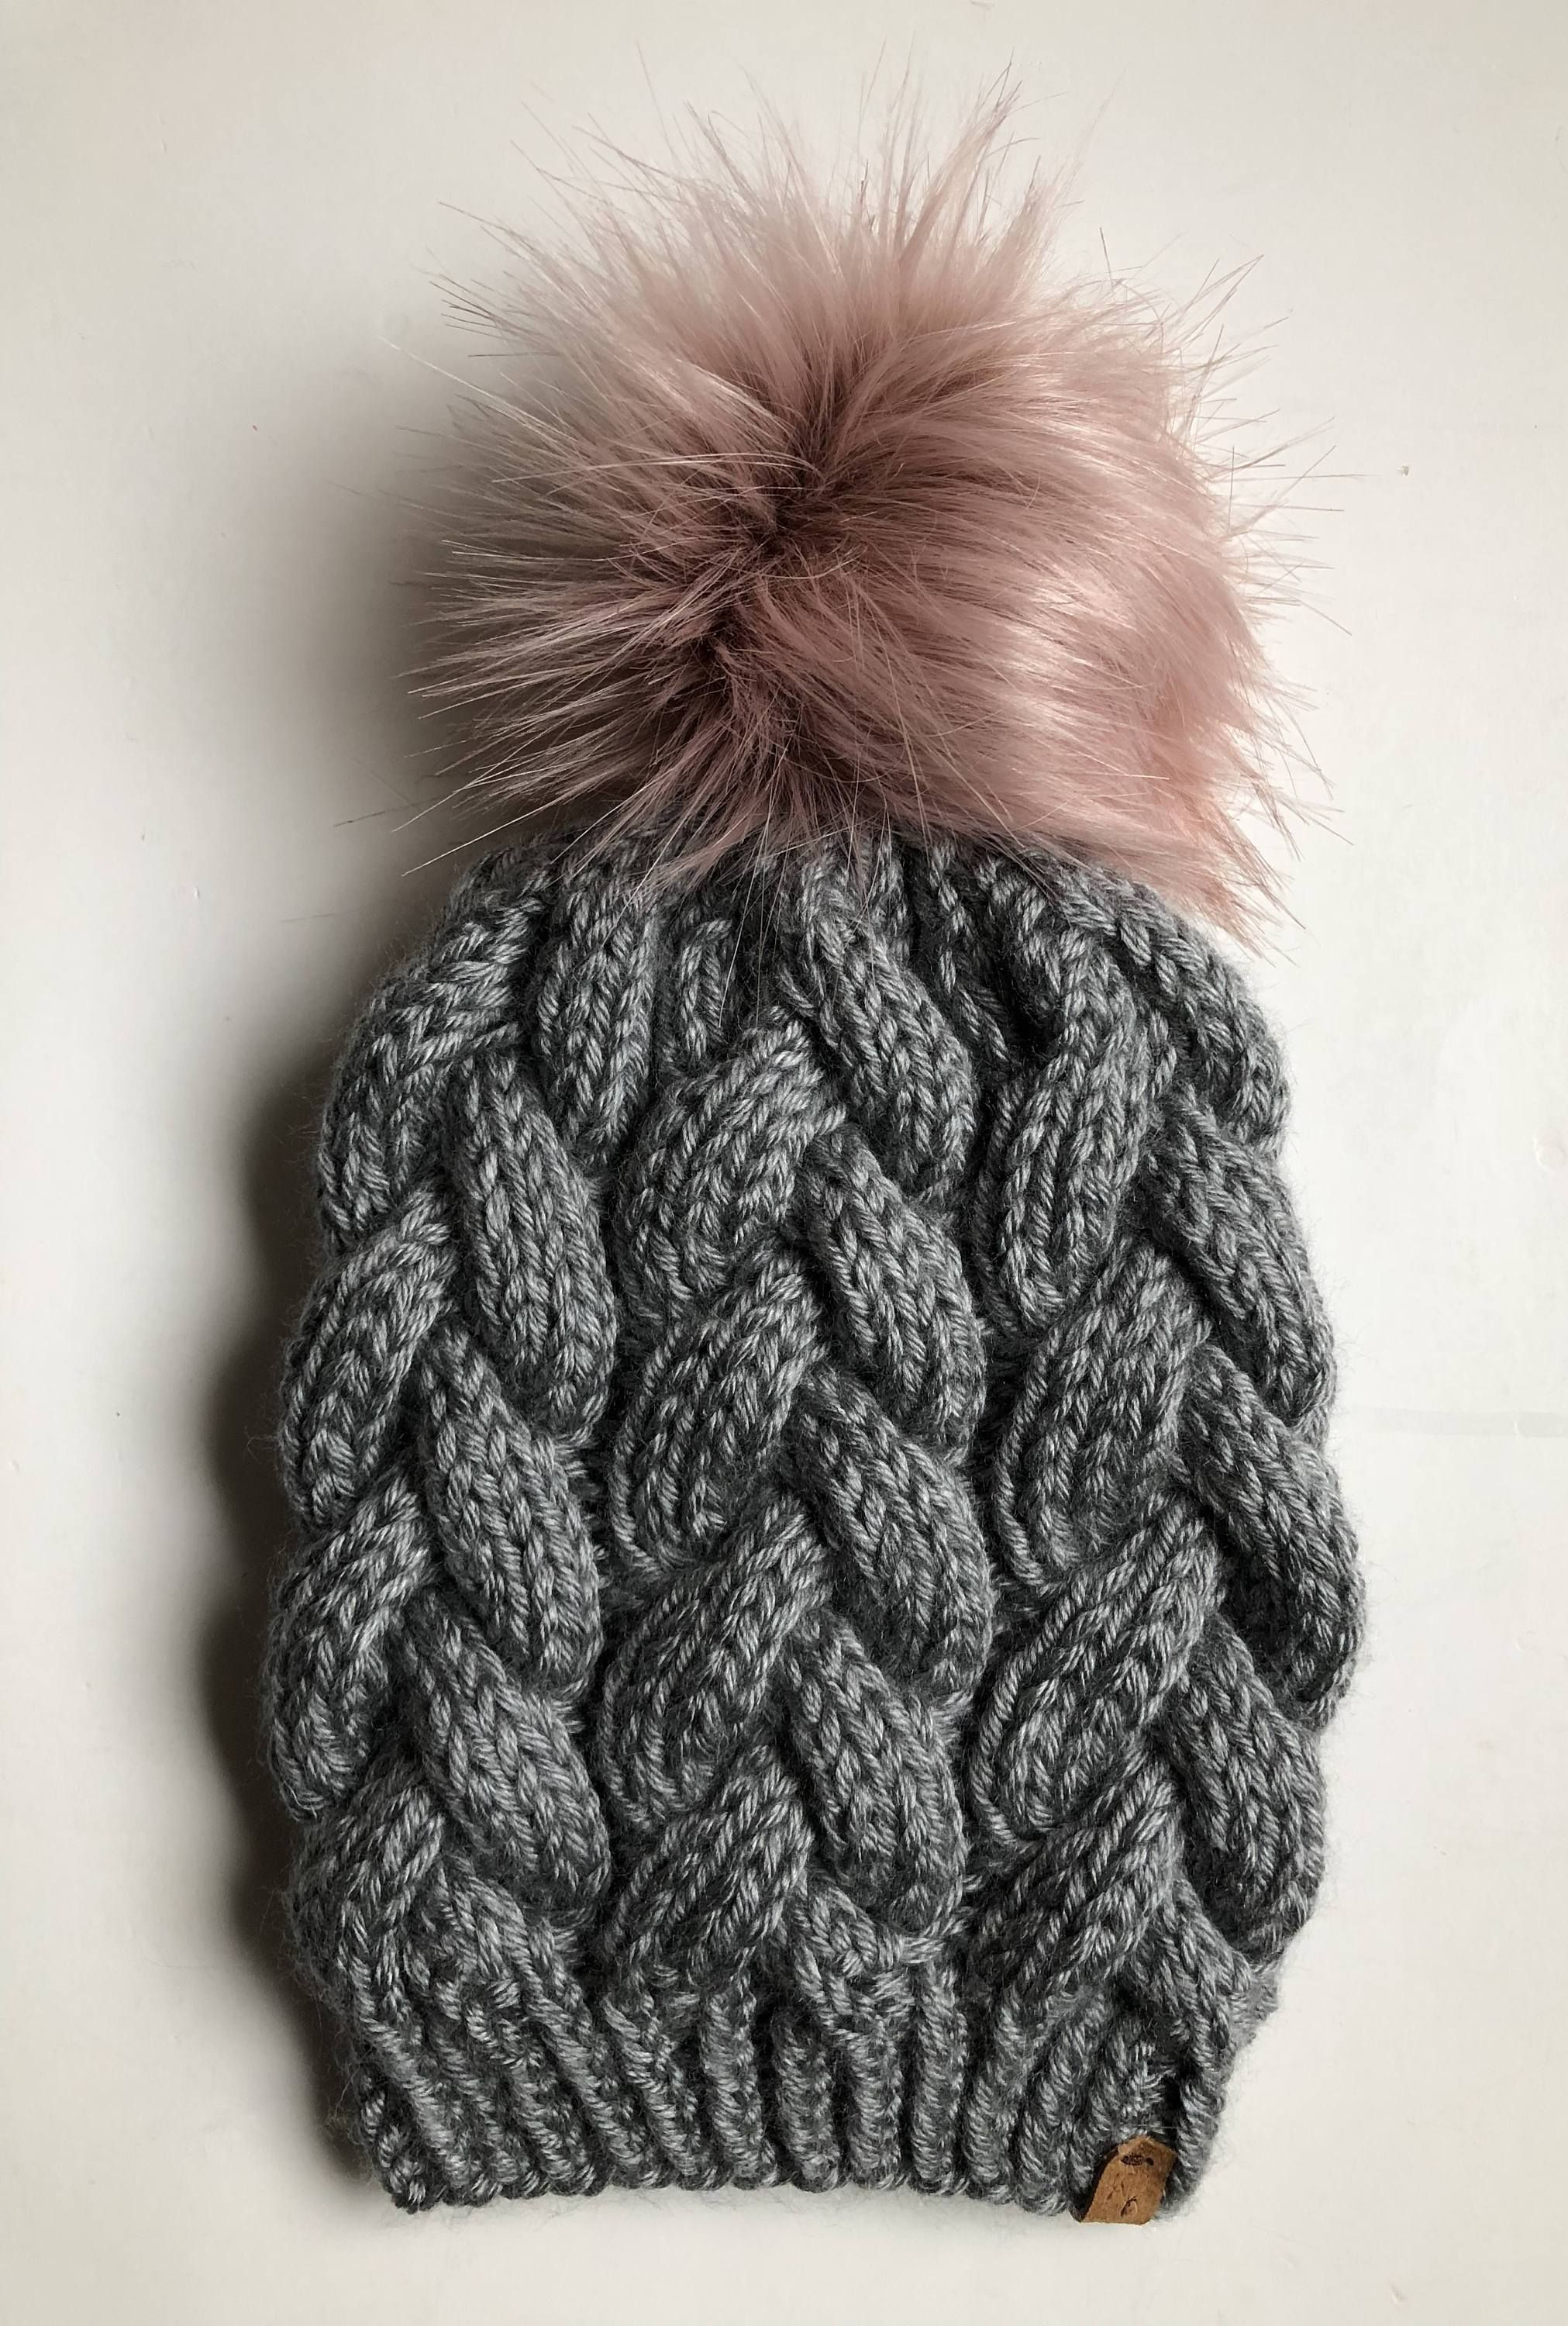 3dcfaba243893 Hand Knit Braided Cable Beanie Grey Heather with Faux Fur Pom ...